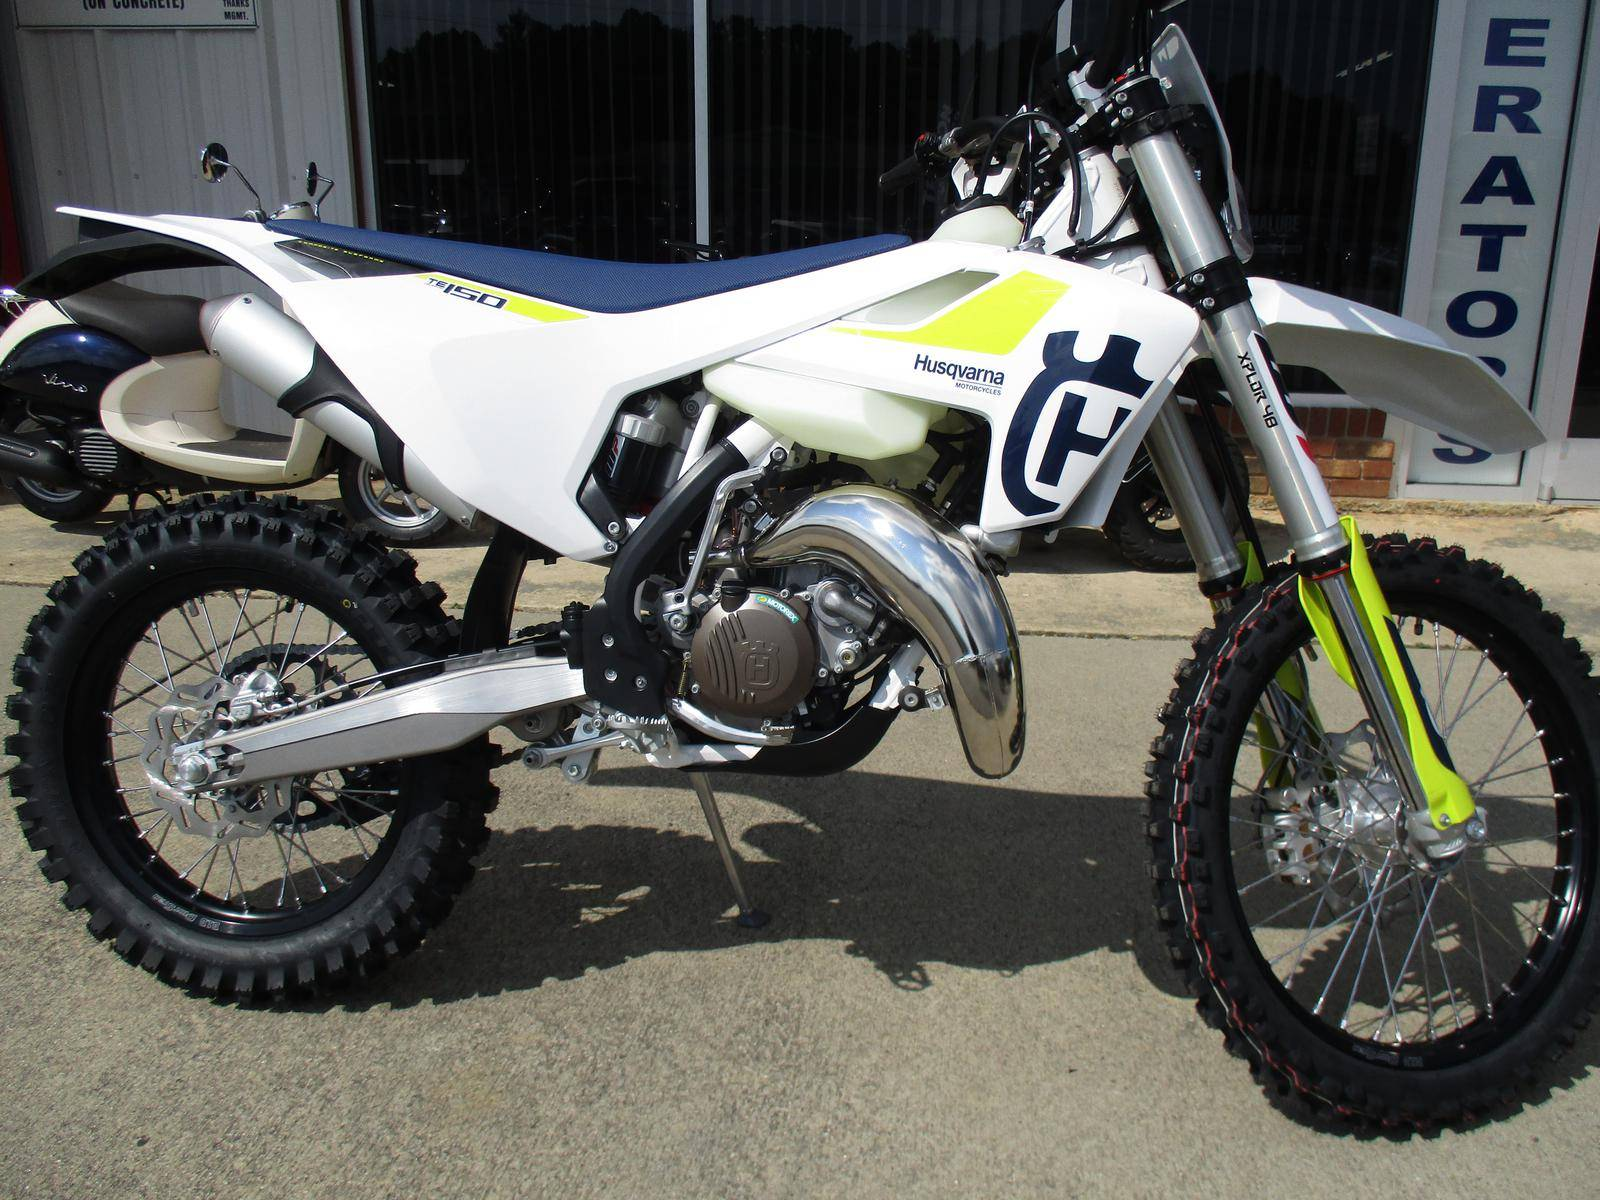 2019 Husqvarna TE 150 in Hendersonville, North Carolina